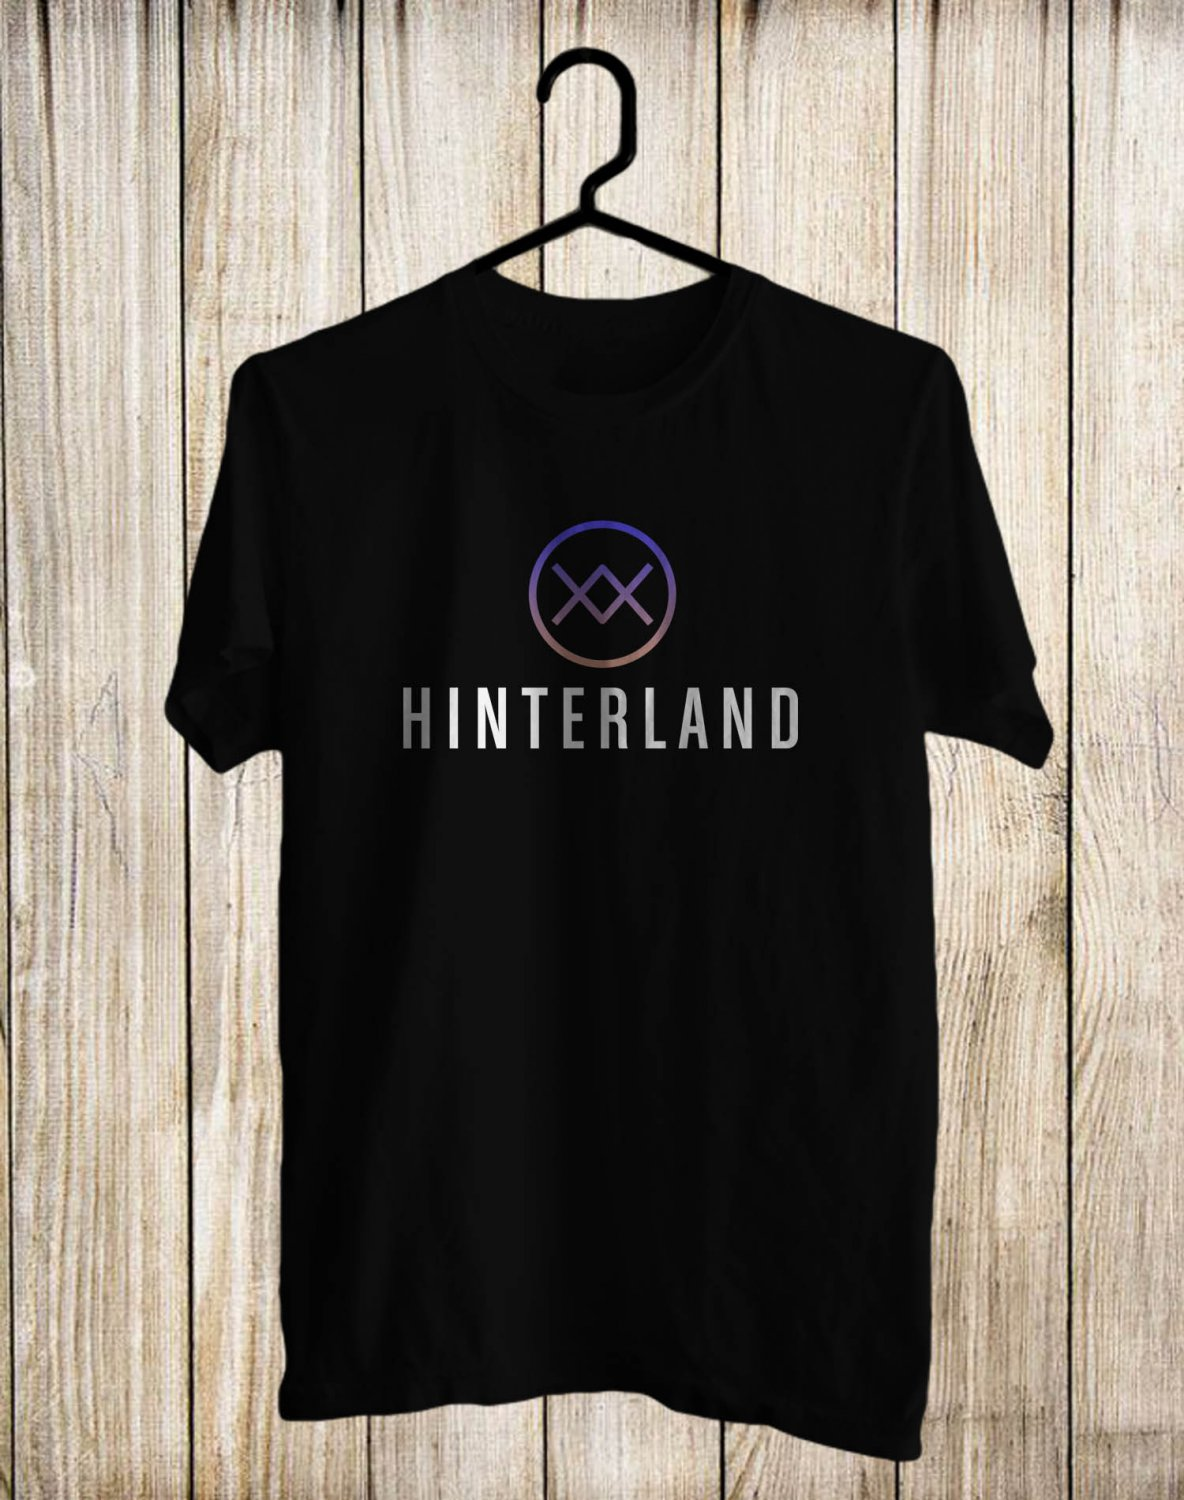 Hinterland Music Festival Logo Black Tee's Front Side by Complexart